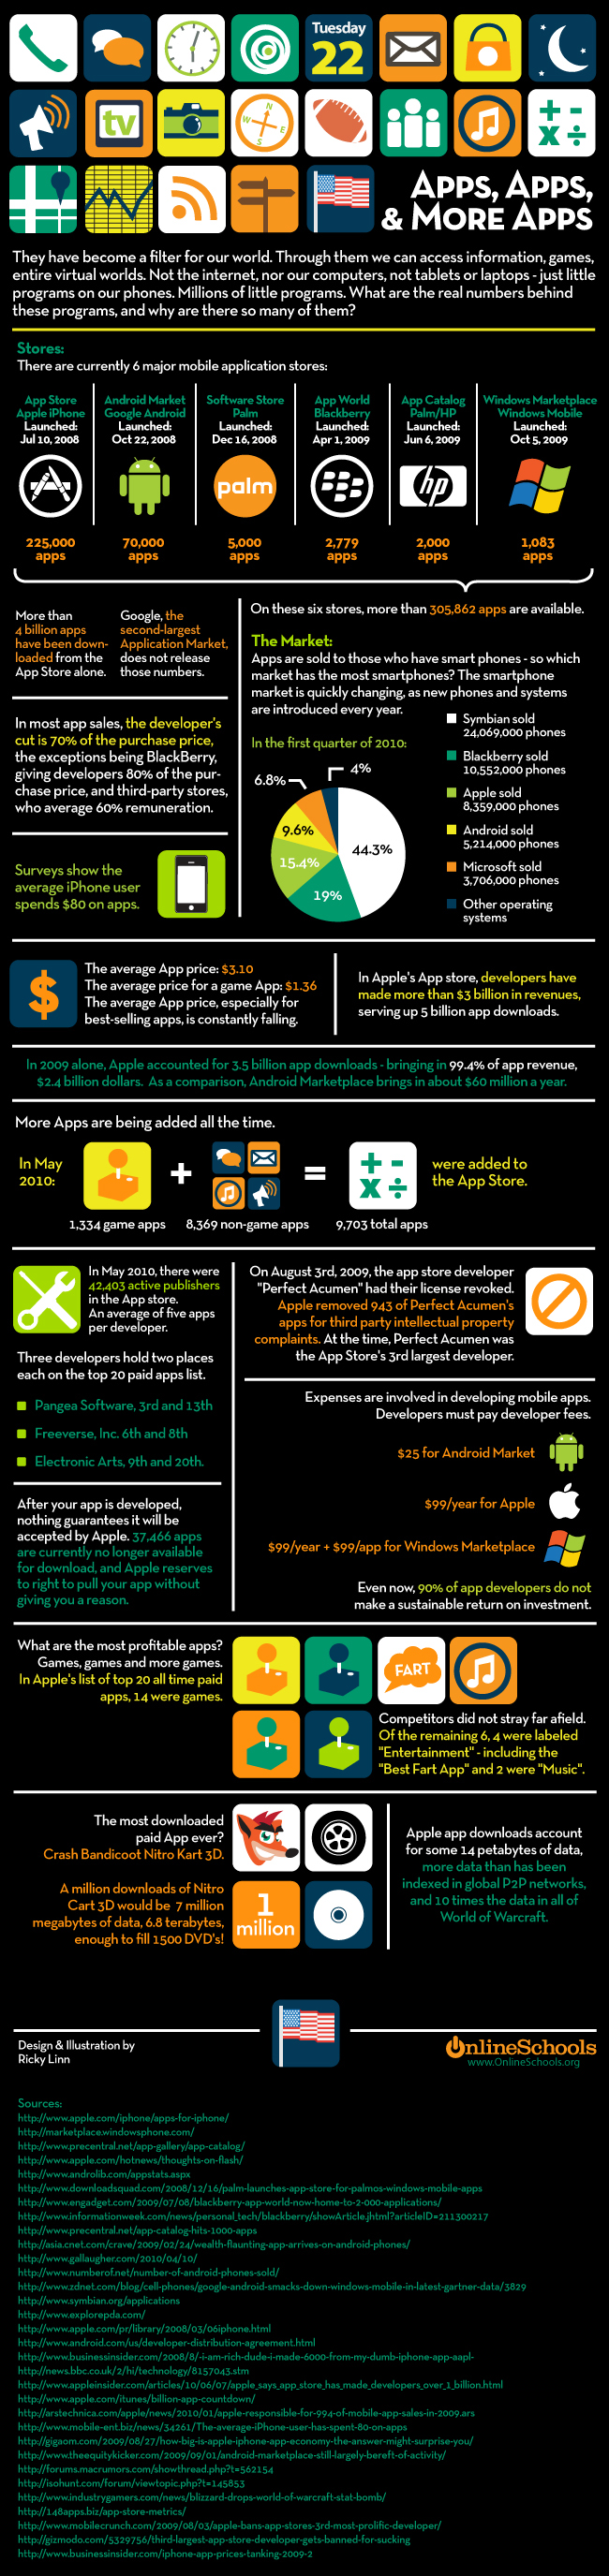 Apps Apps and More Apps Infographic